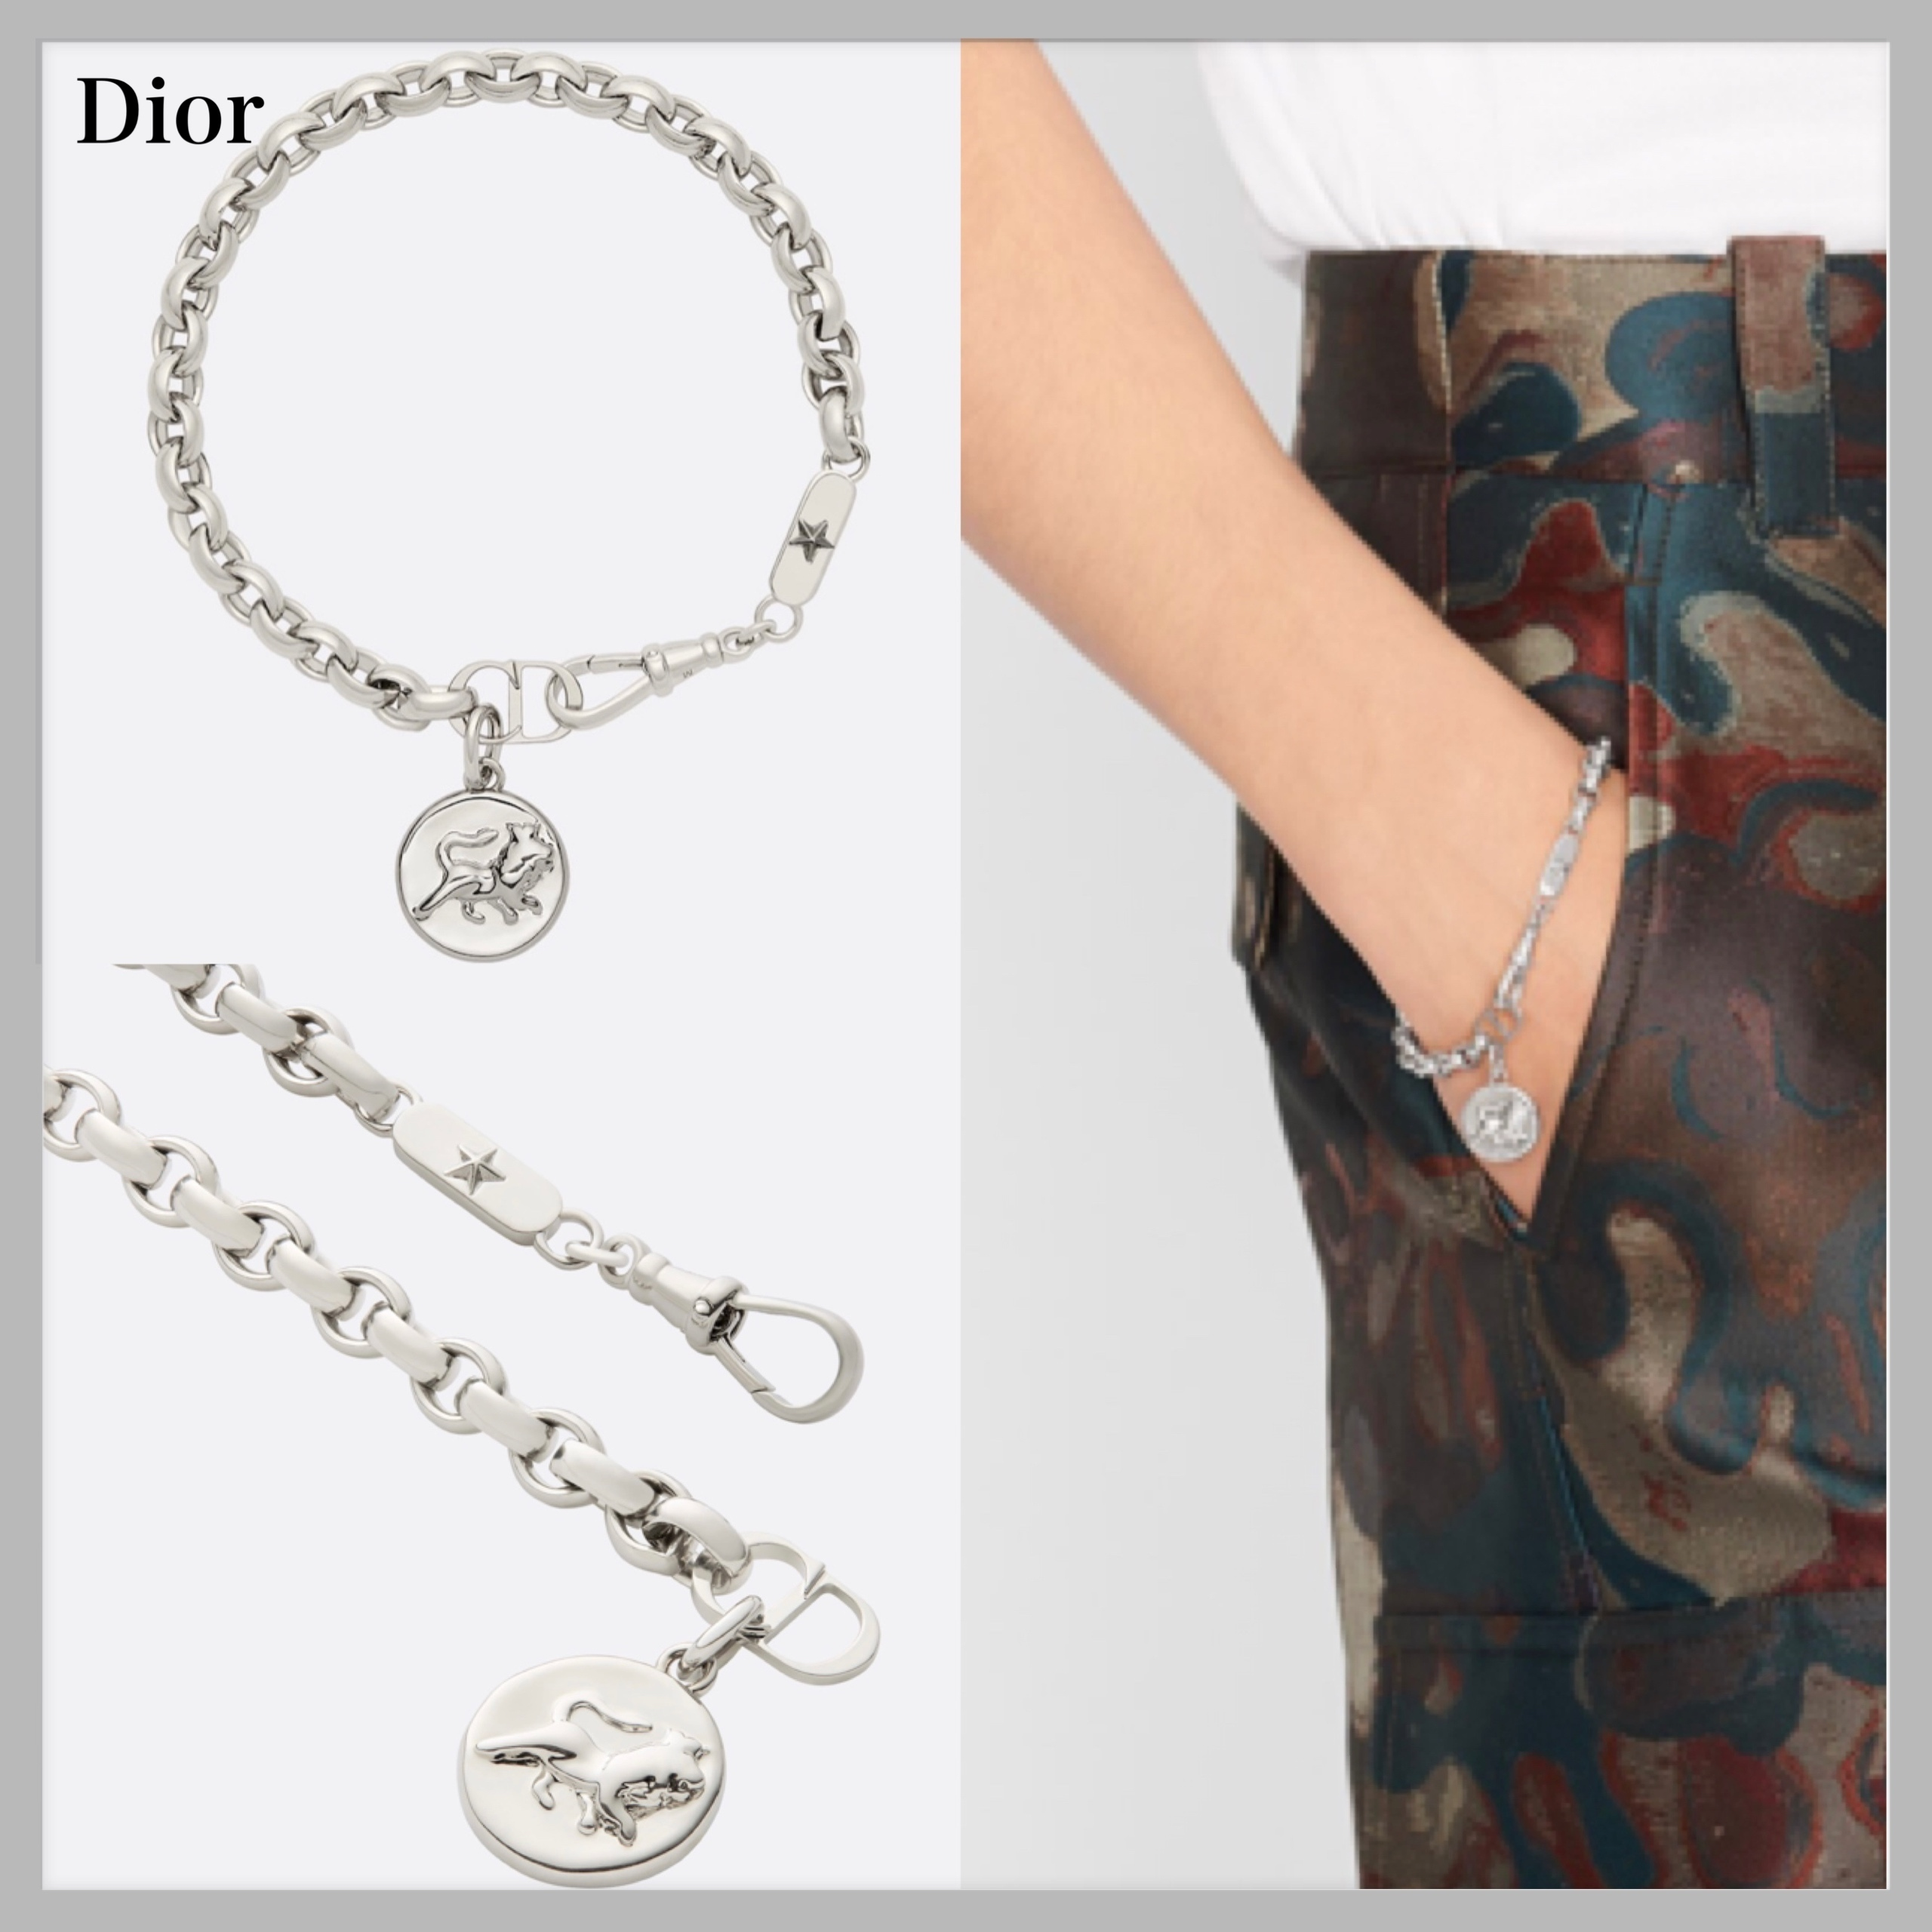 """【DIOR】""""DIOR AND PETER DOIG"""" メダリオンブレスレット/silver (Dior/ブレスレット) B1391HOMMT_D000"""